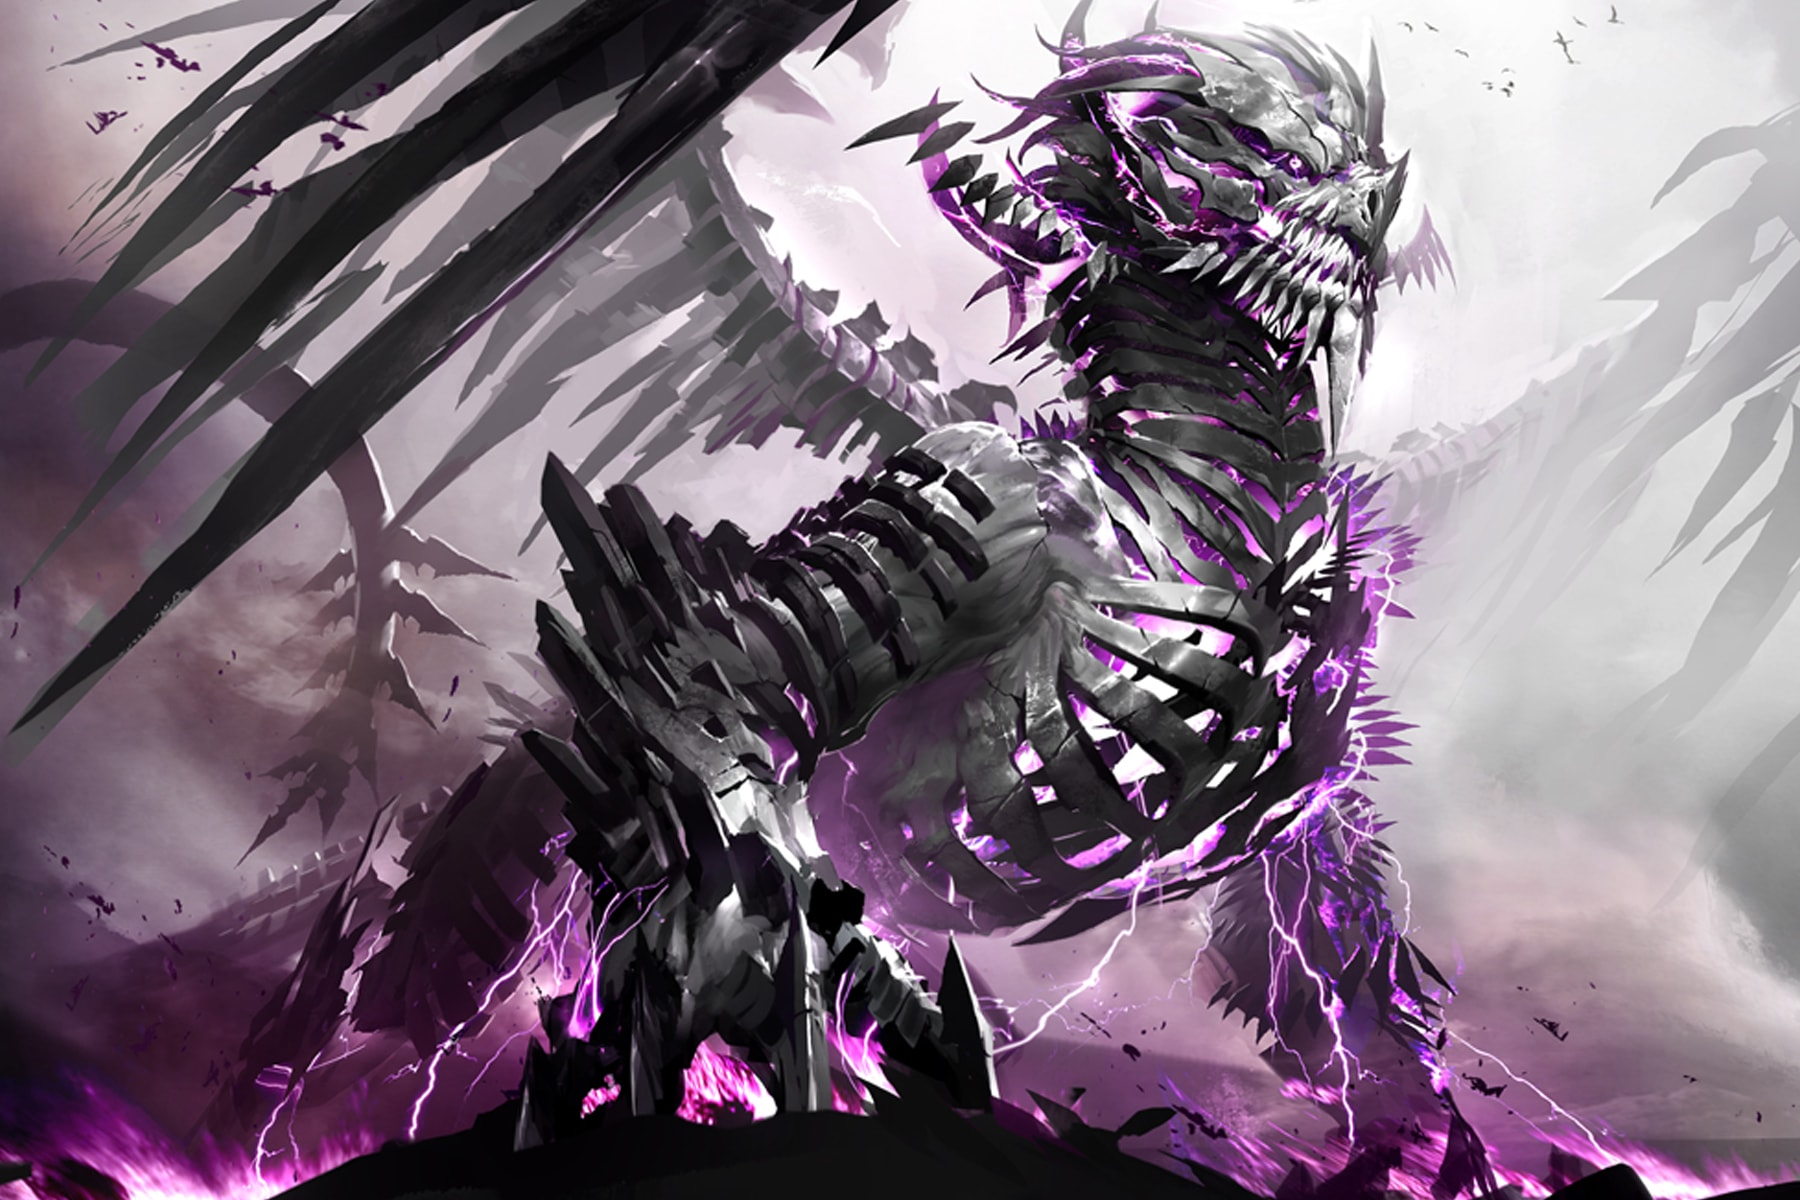 Illustration of Guild Wars 2 world boss The Shatterer, an enormous dragon generating purple lightning